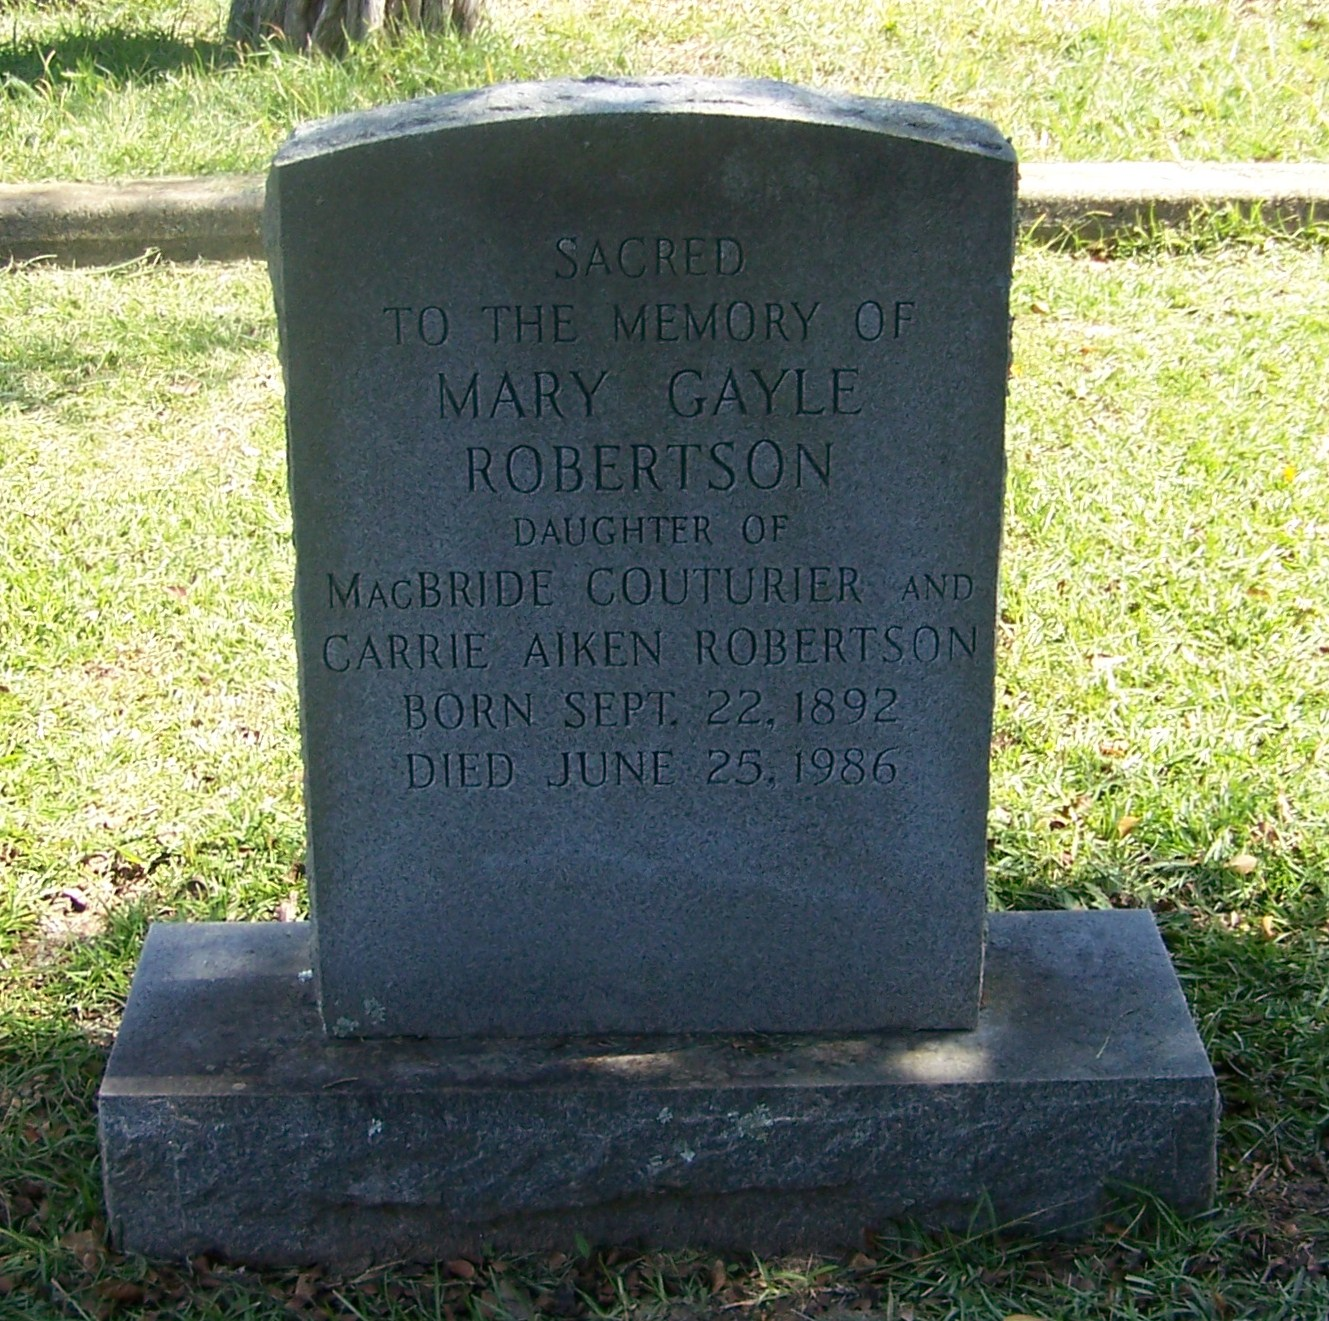 Mary Gayle Robertson